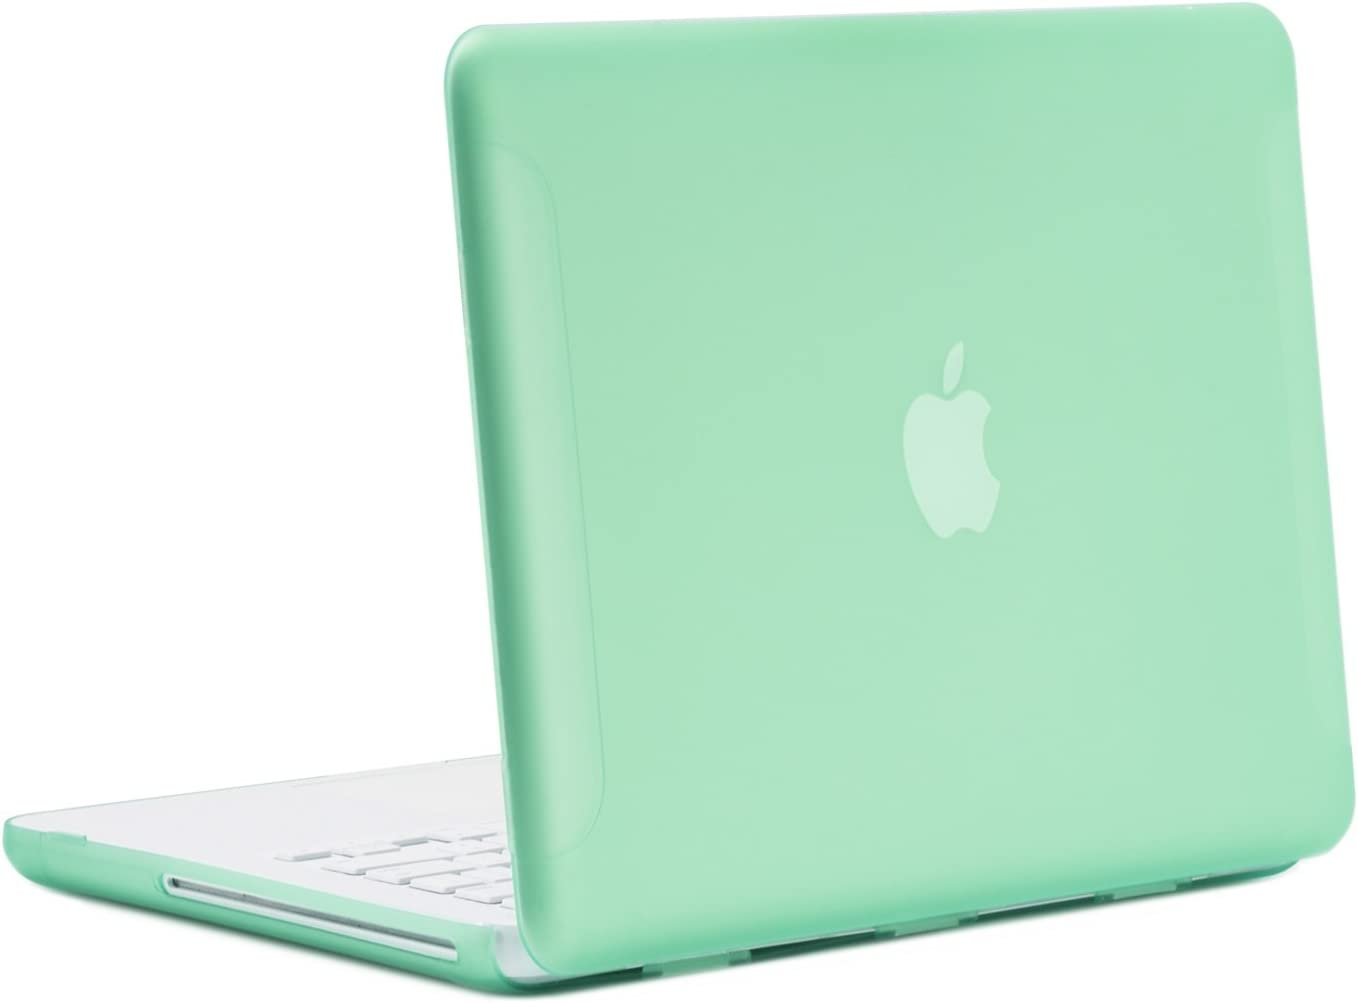 """TopCase Rubberized Green Hard Case Cover for Macbook White 13"""" (A1342/Latest) with TopCase Mouse Pad (case NOT for 1st gen A1181 with mouse clicker)"""